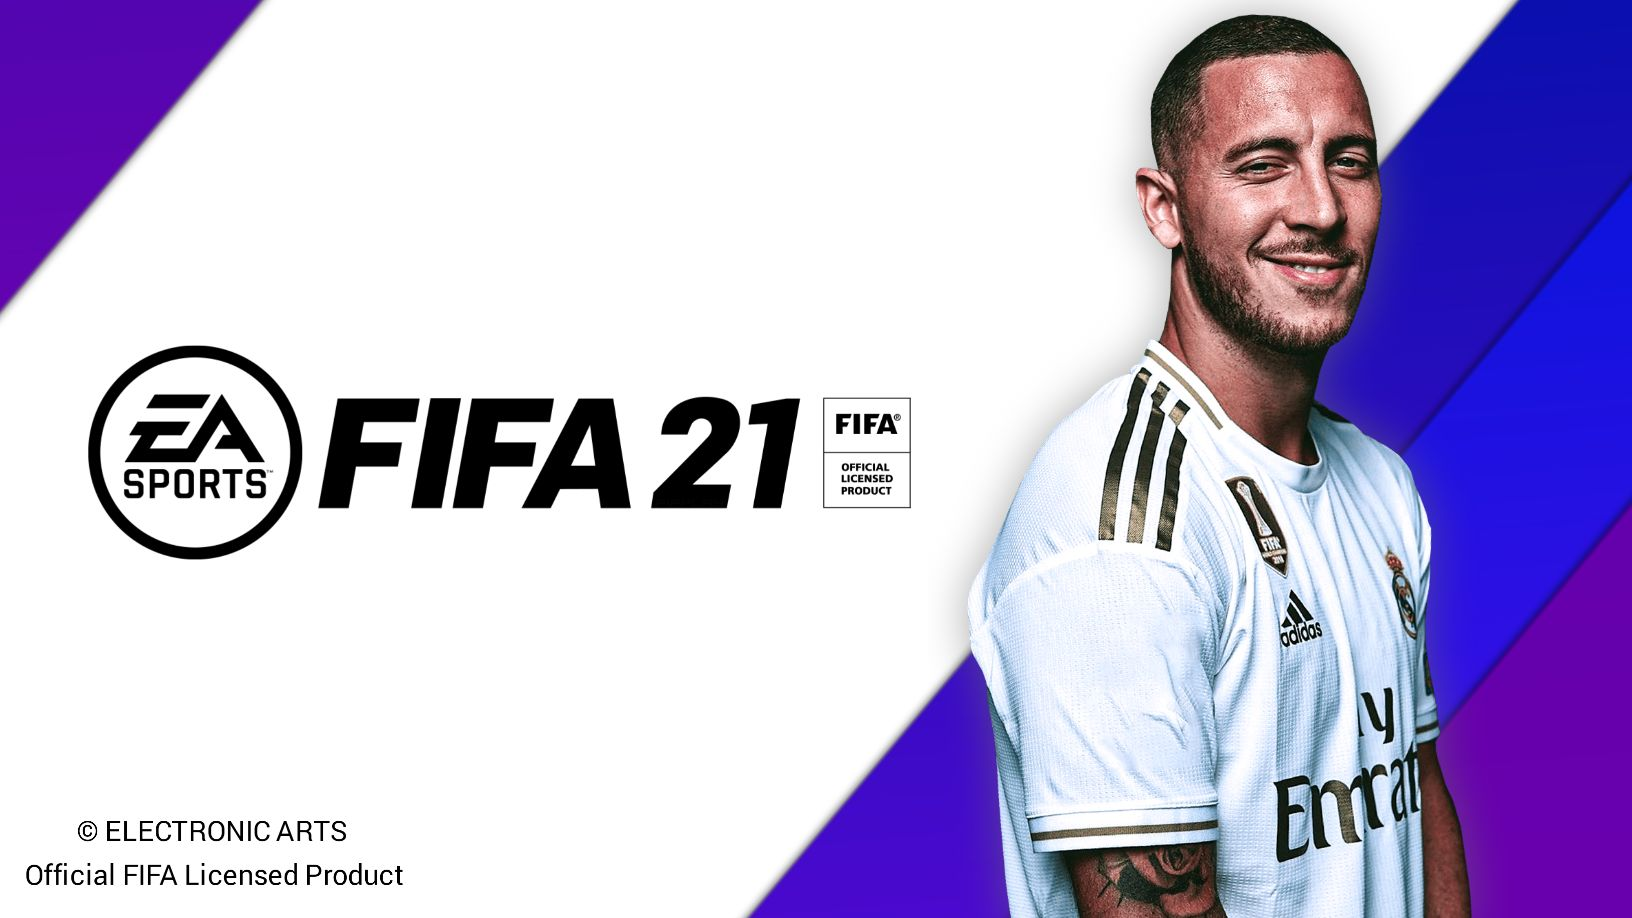 FIFA 21 Mobile Android Offline 800 MB Best Graphics